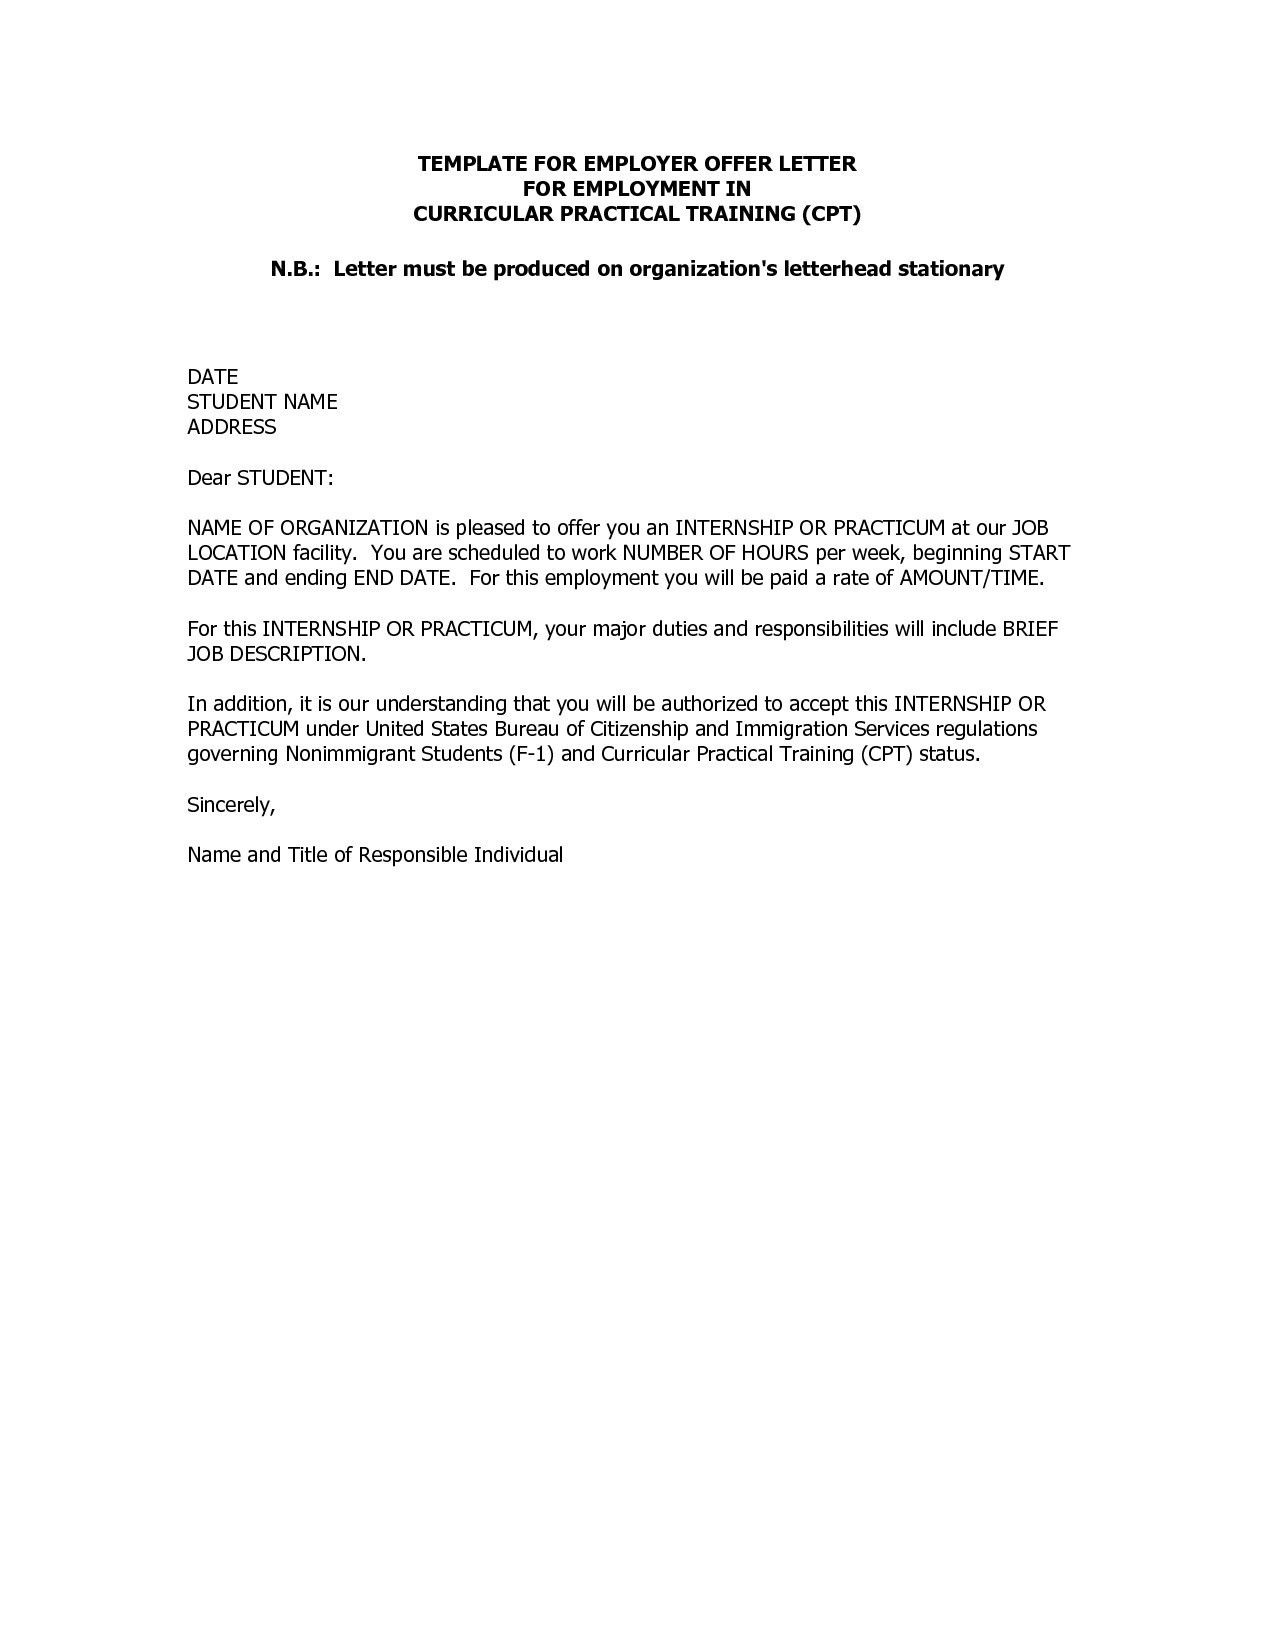 Download New Rescinding A Job Offer Letter Lettersample